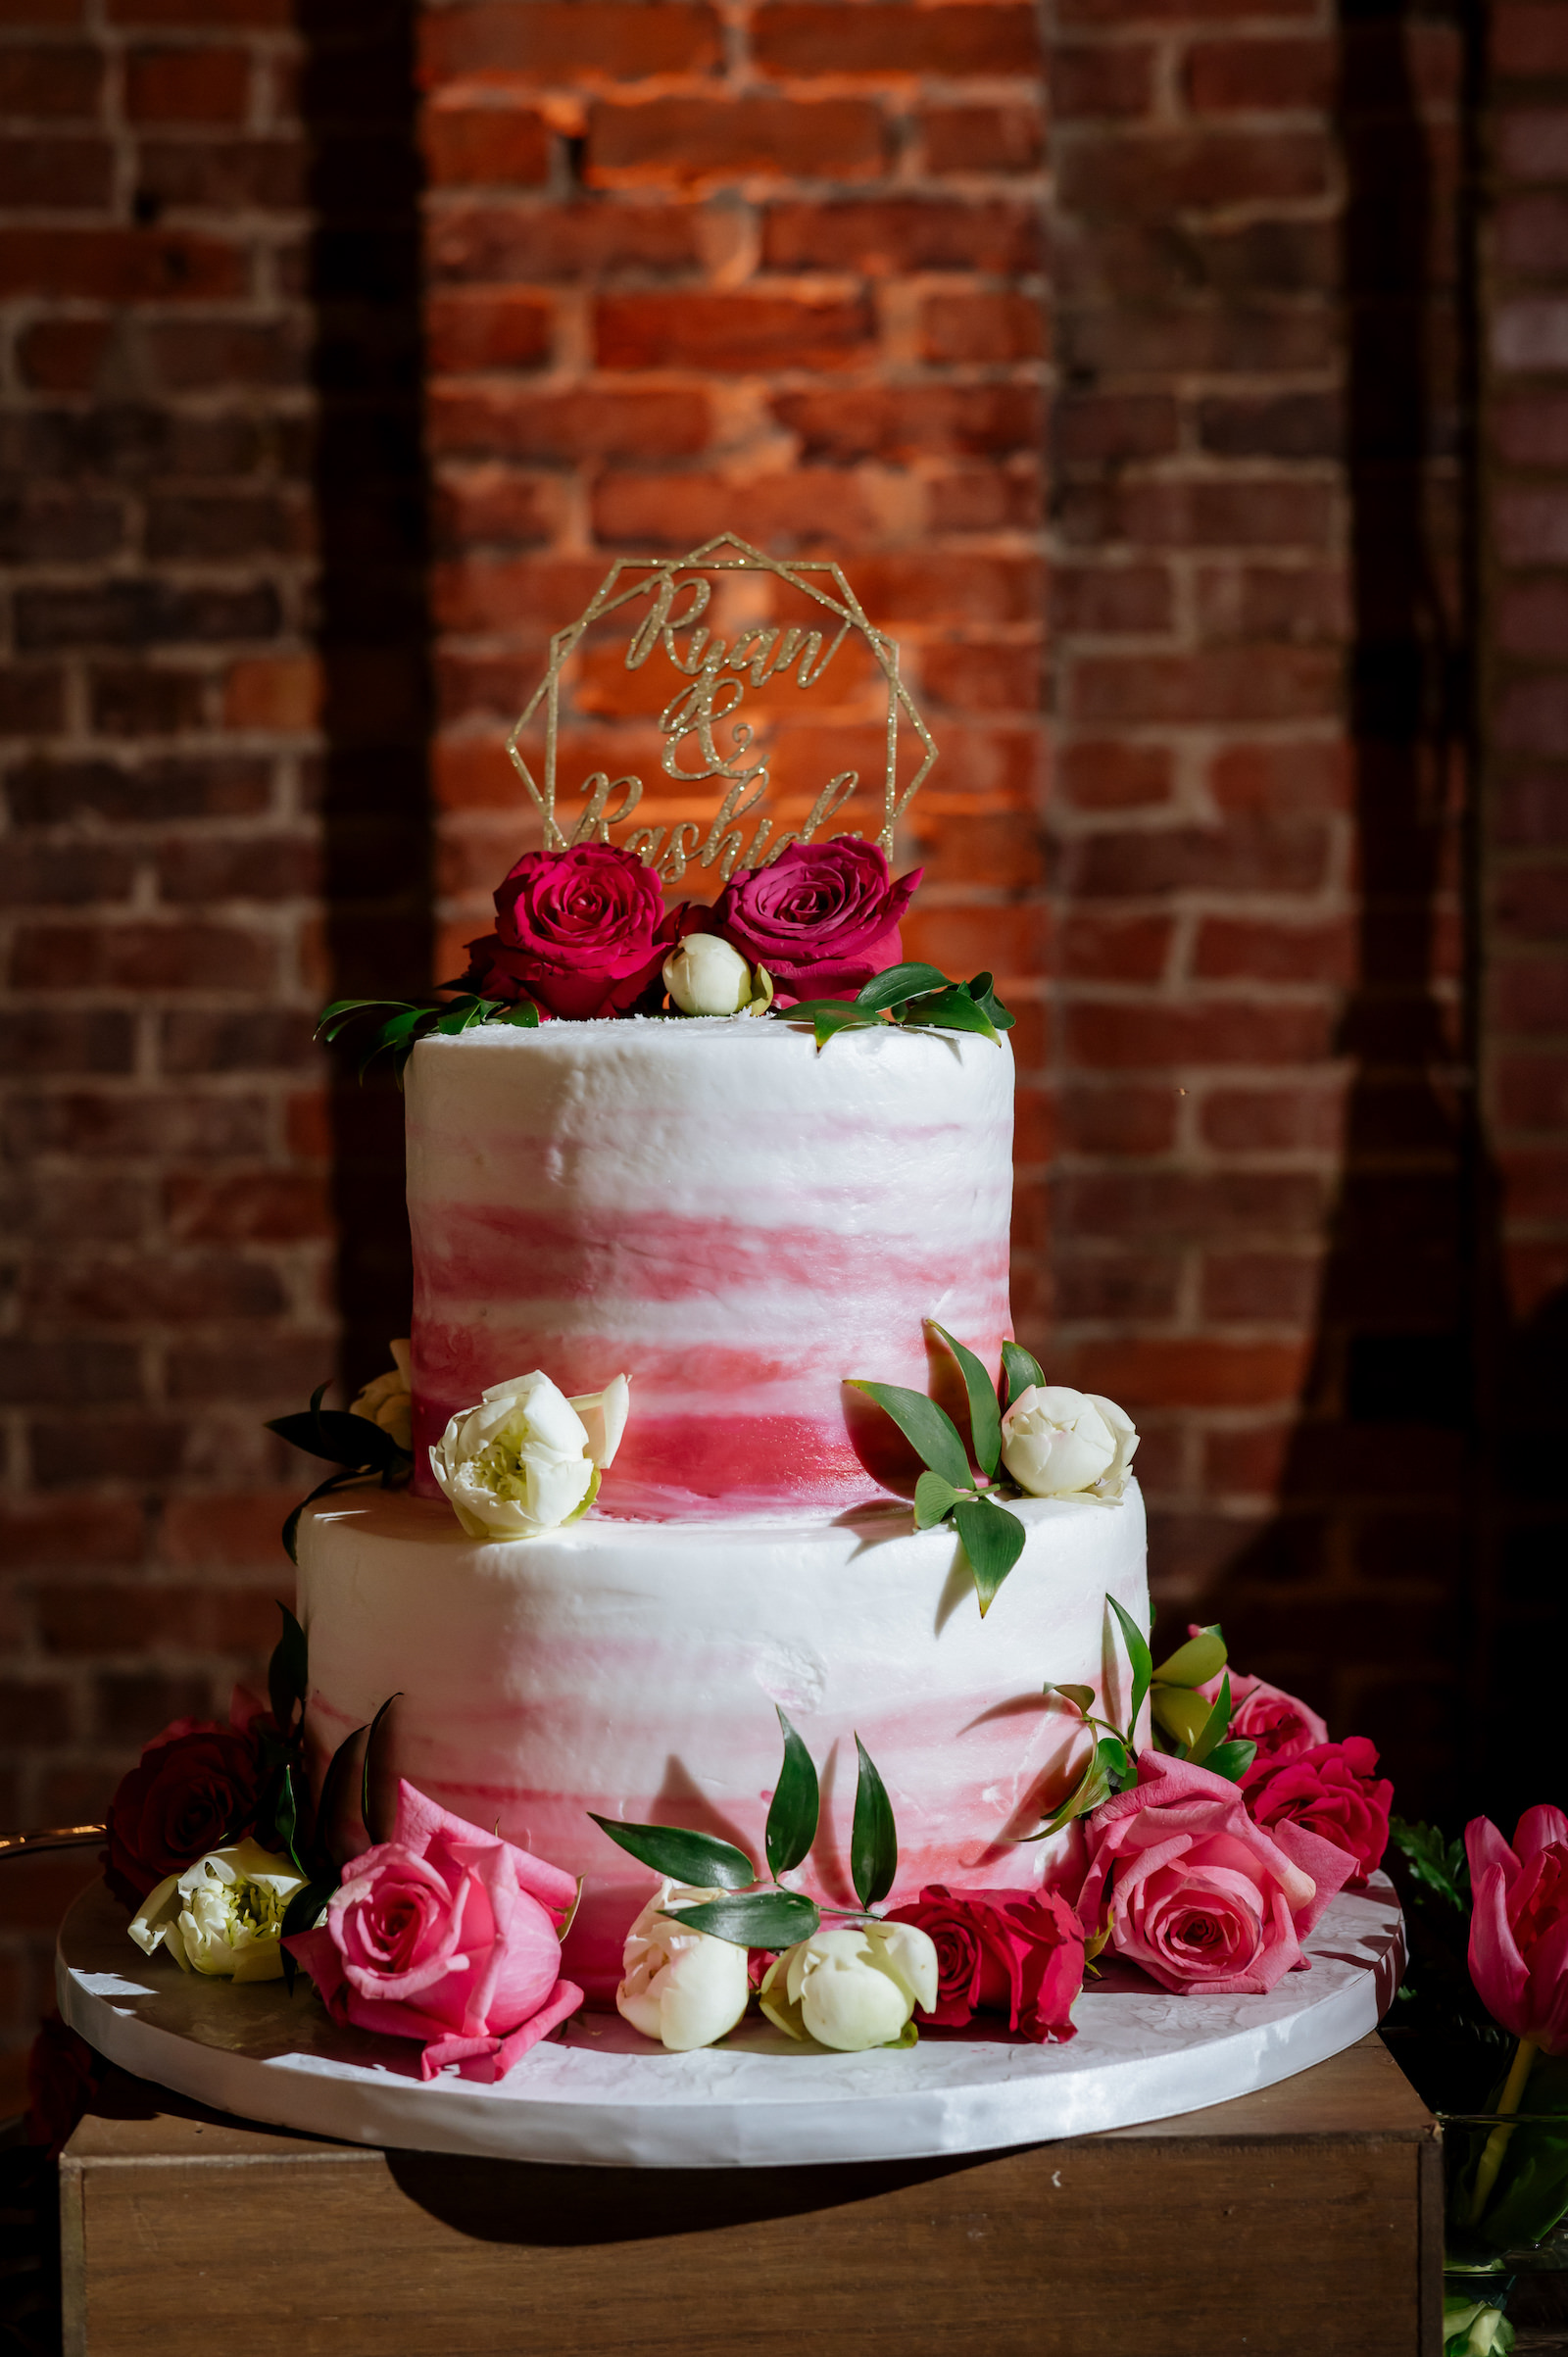 Two Tier Pink Ombre Wedding Cake with Pink and White Roses and Gold Glitter Geometric Cake Topper by Alessi Bakery